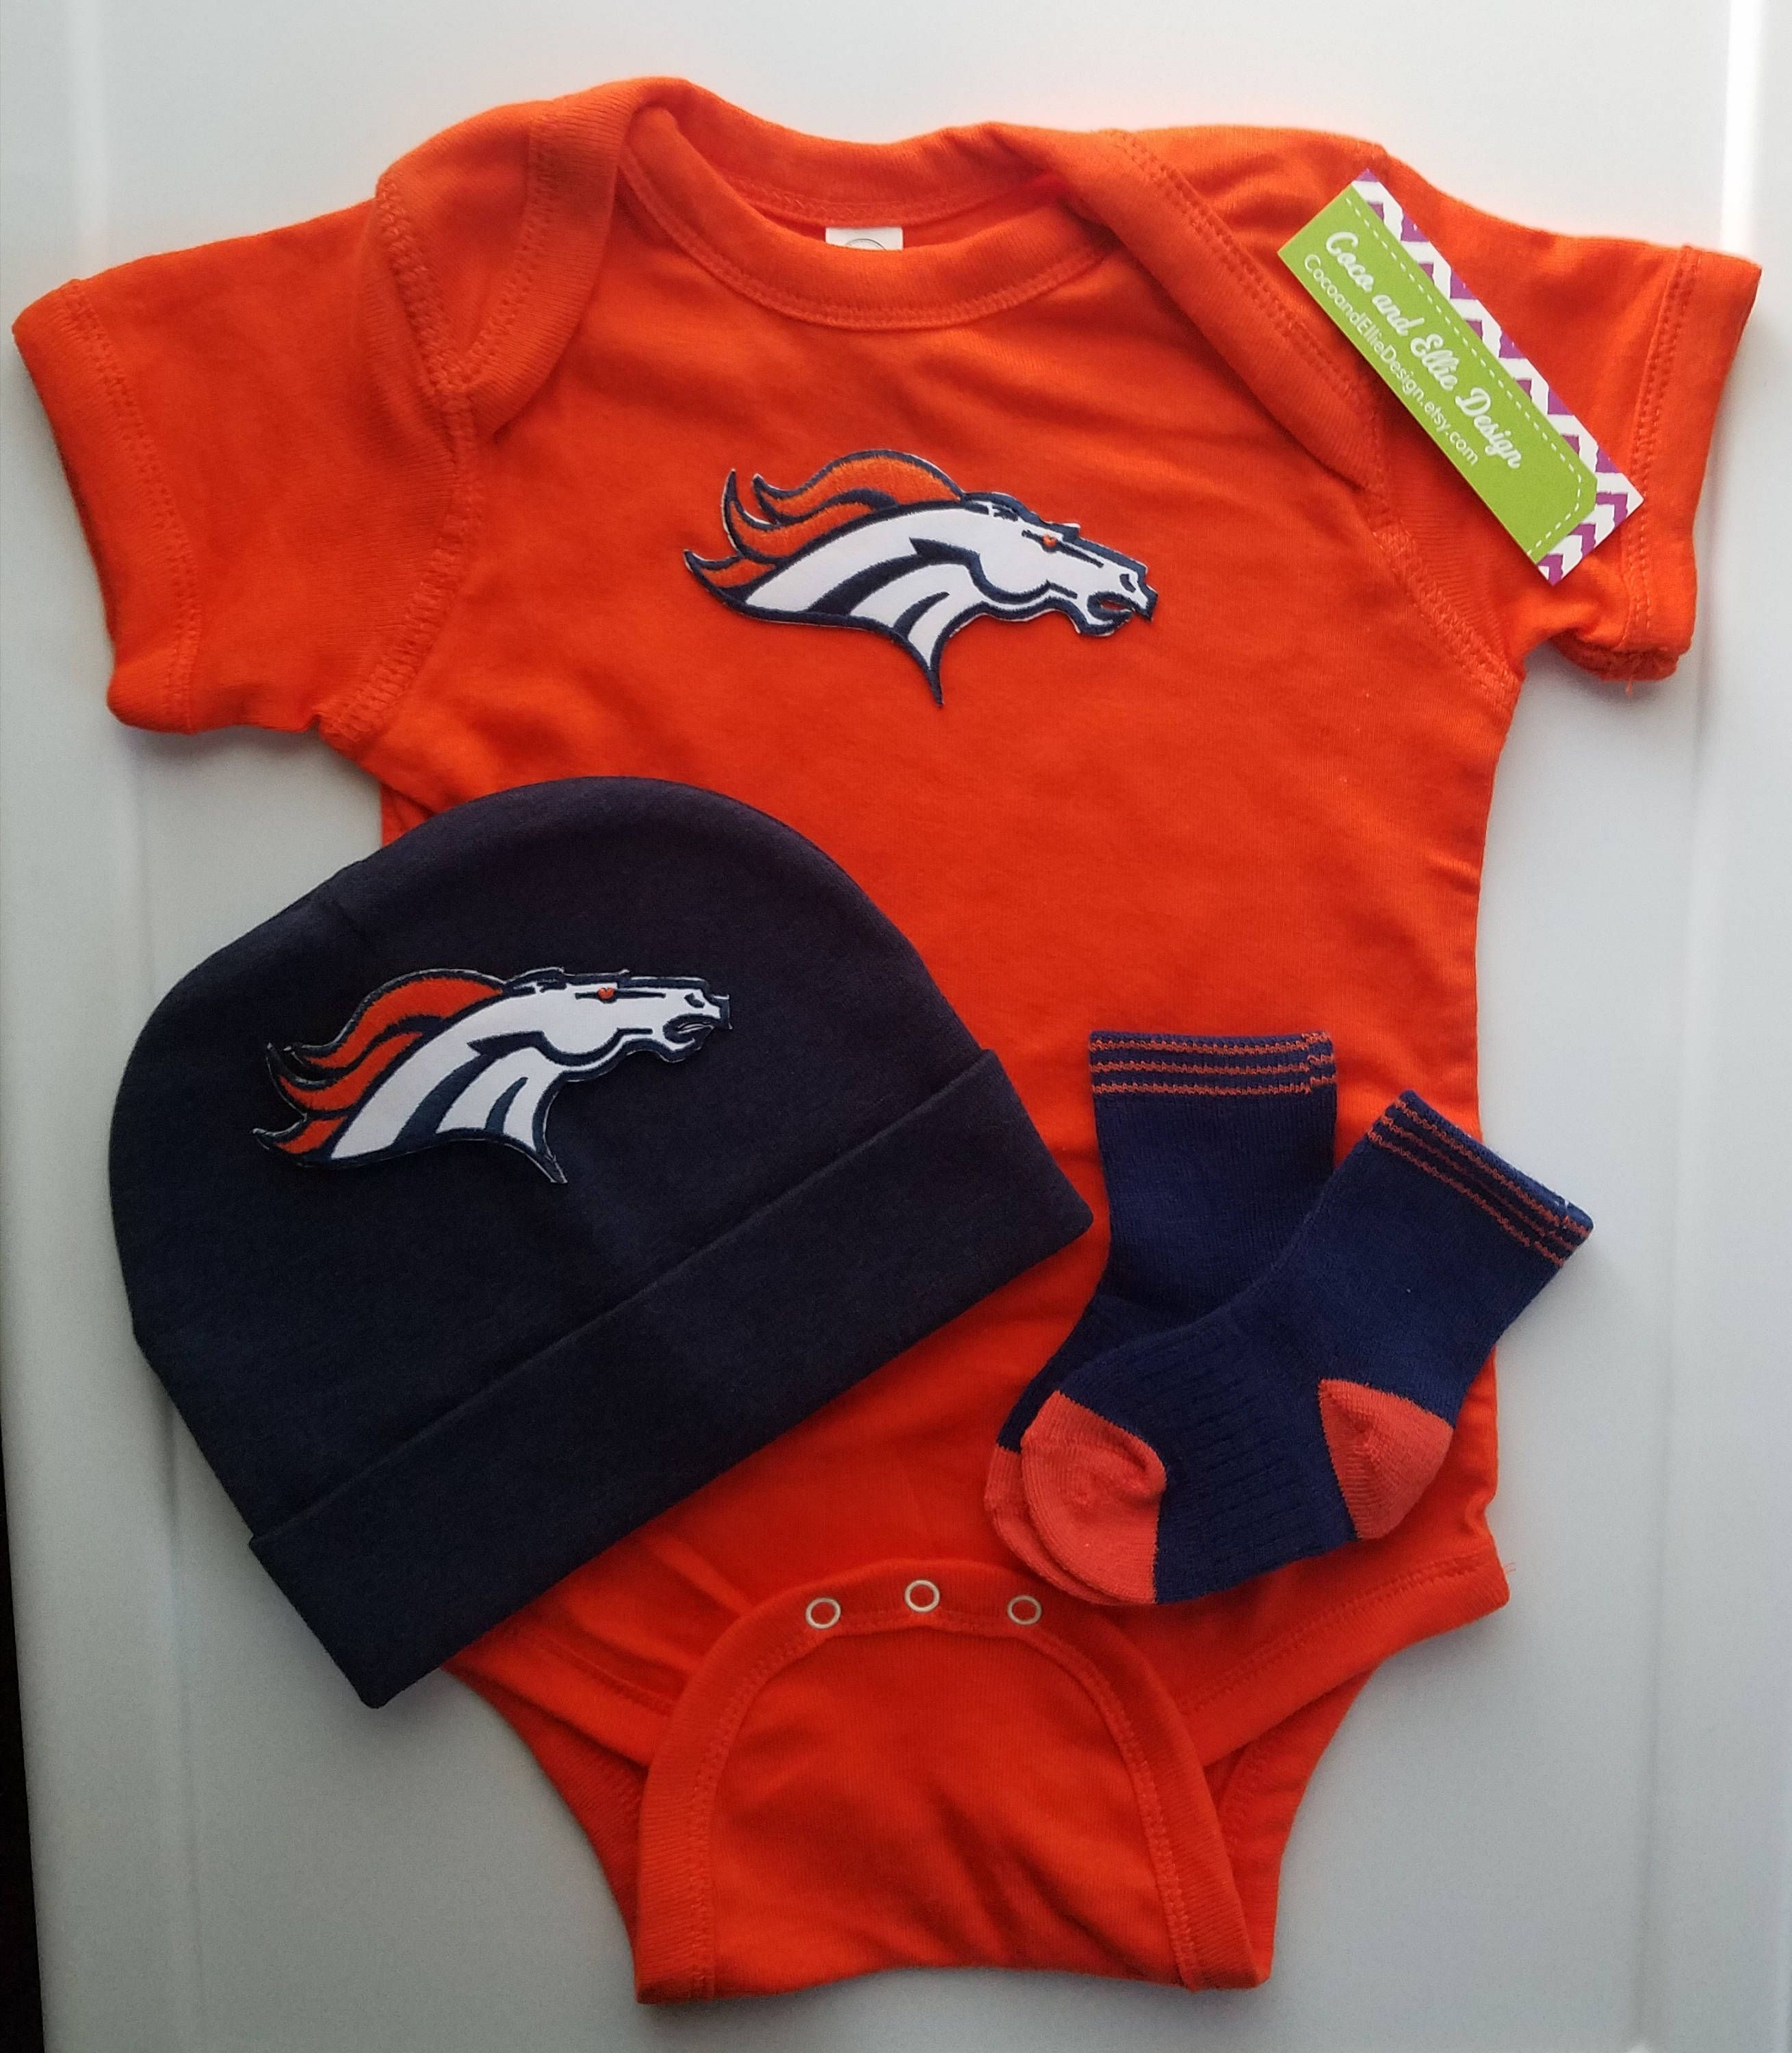 766ecf5b9 baby boy Denver Broncos outfit with hat-denver broncos baby gift set-denver  broncos